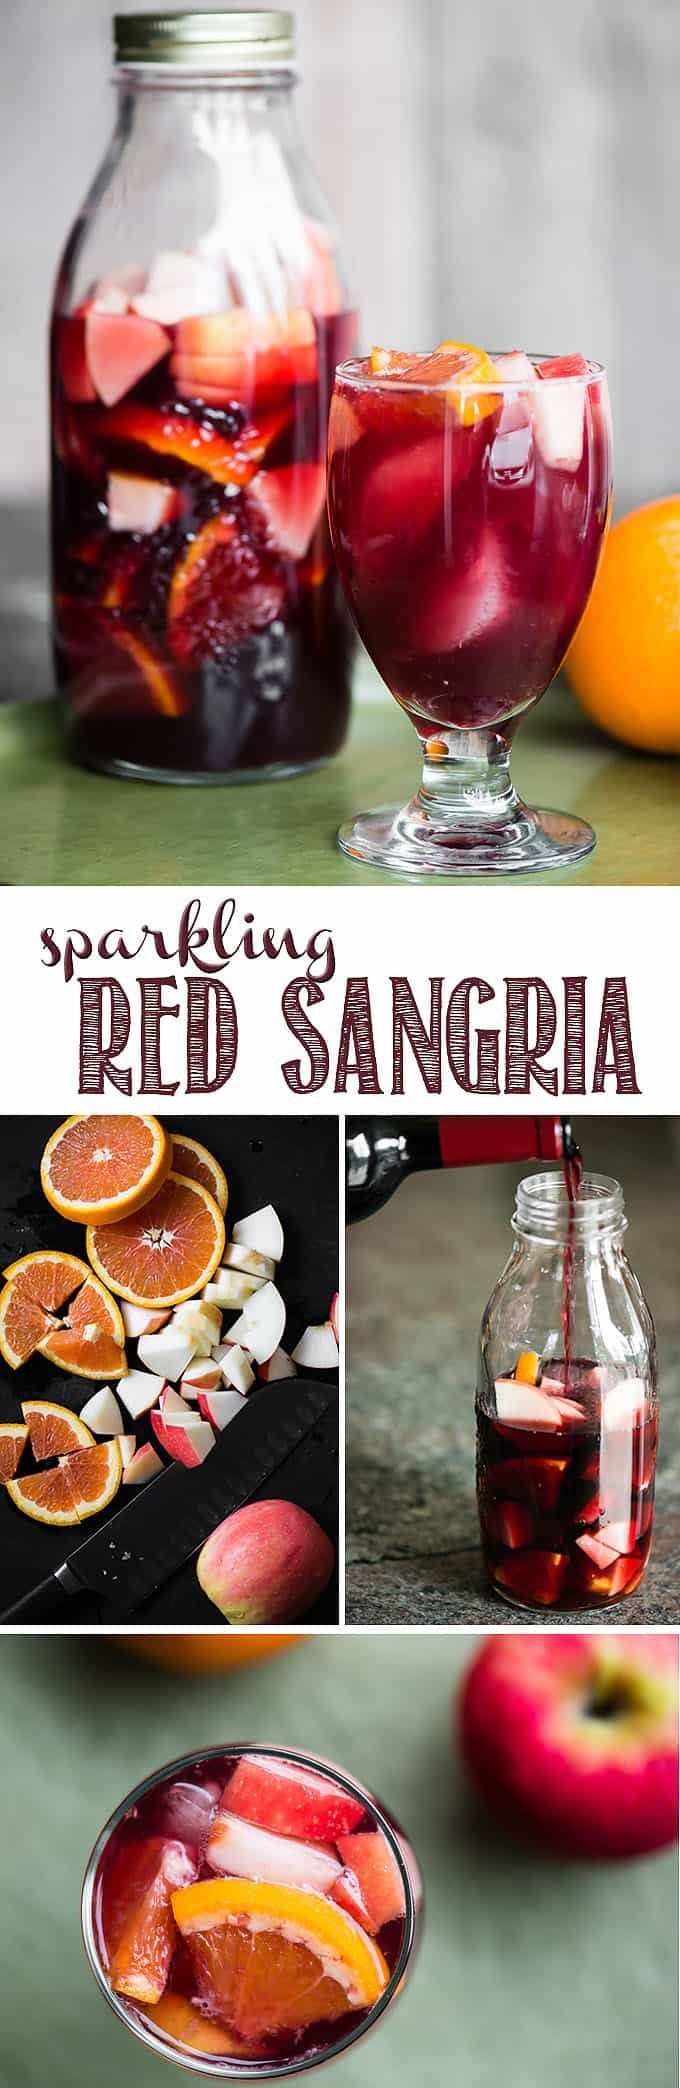 Sparkling Red Sangria is made with your favorite red wine